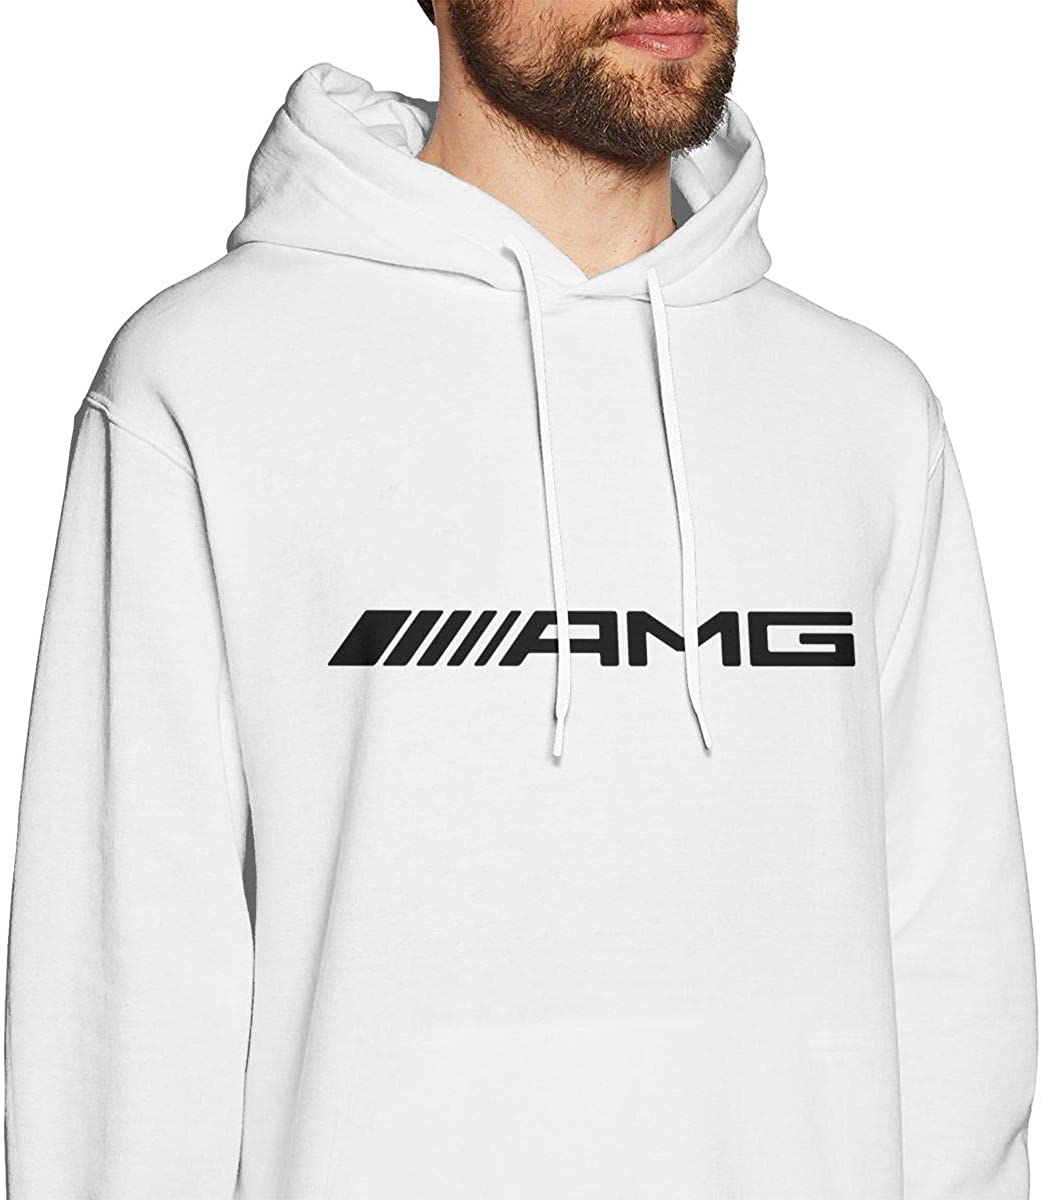 C-JOY Amg-Logo Mens Hoodies Pullover Hooded Sweatshirt Jackets White